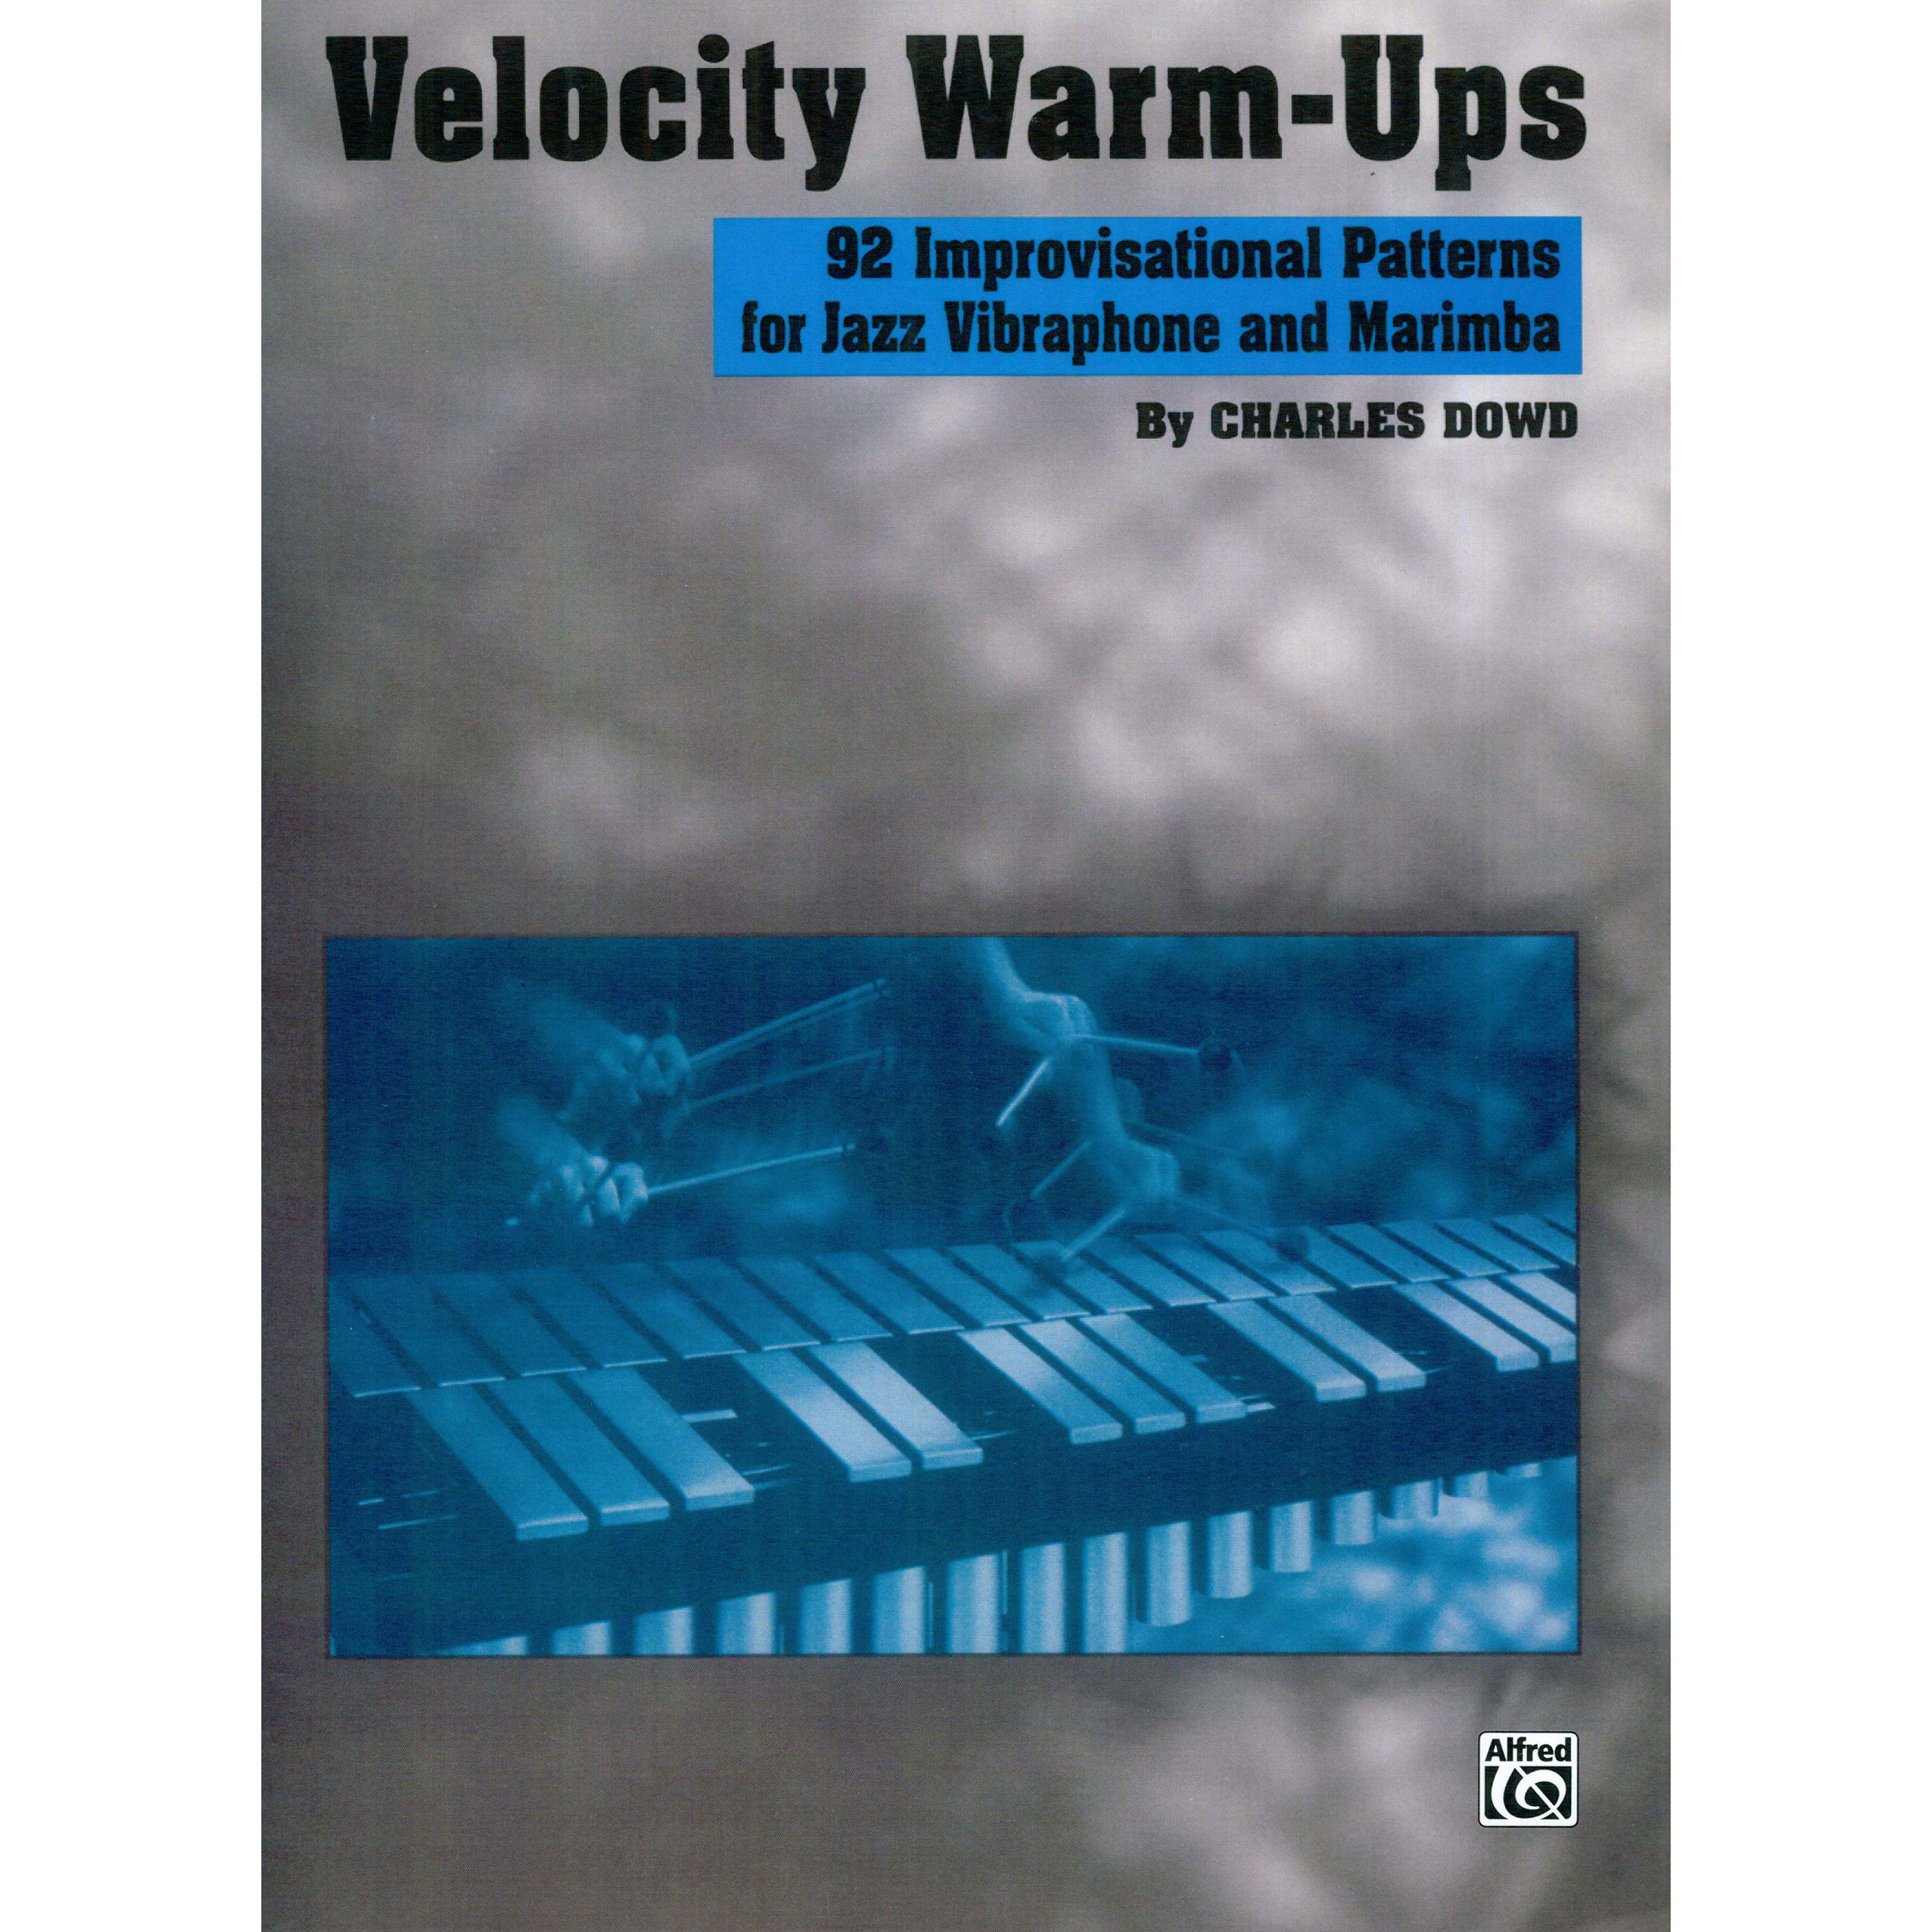 Velocity Warm-Ups for Jazz Vibraphone by Charles Dowd